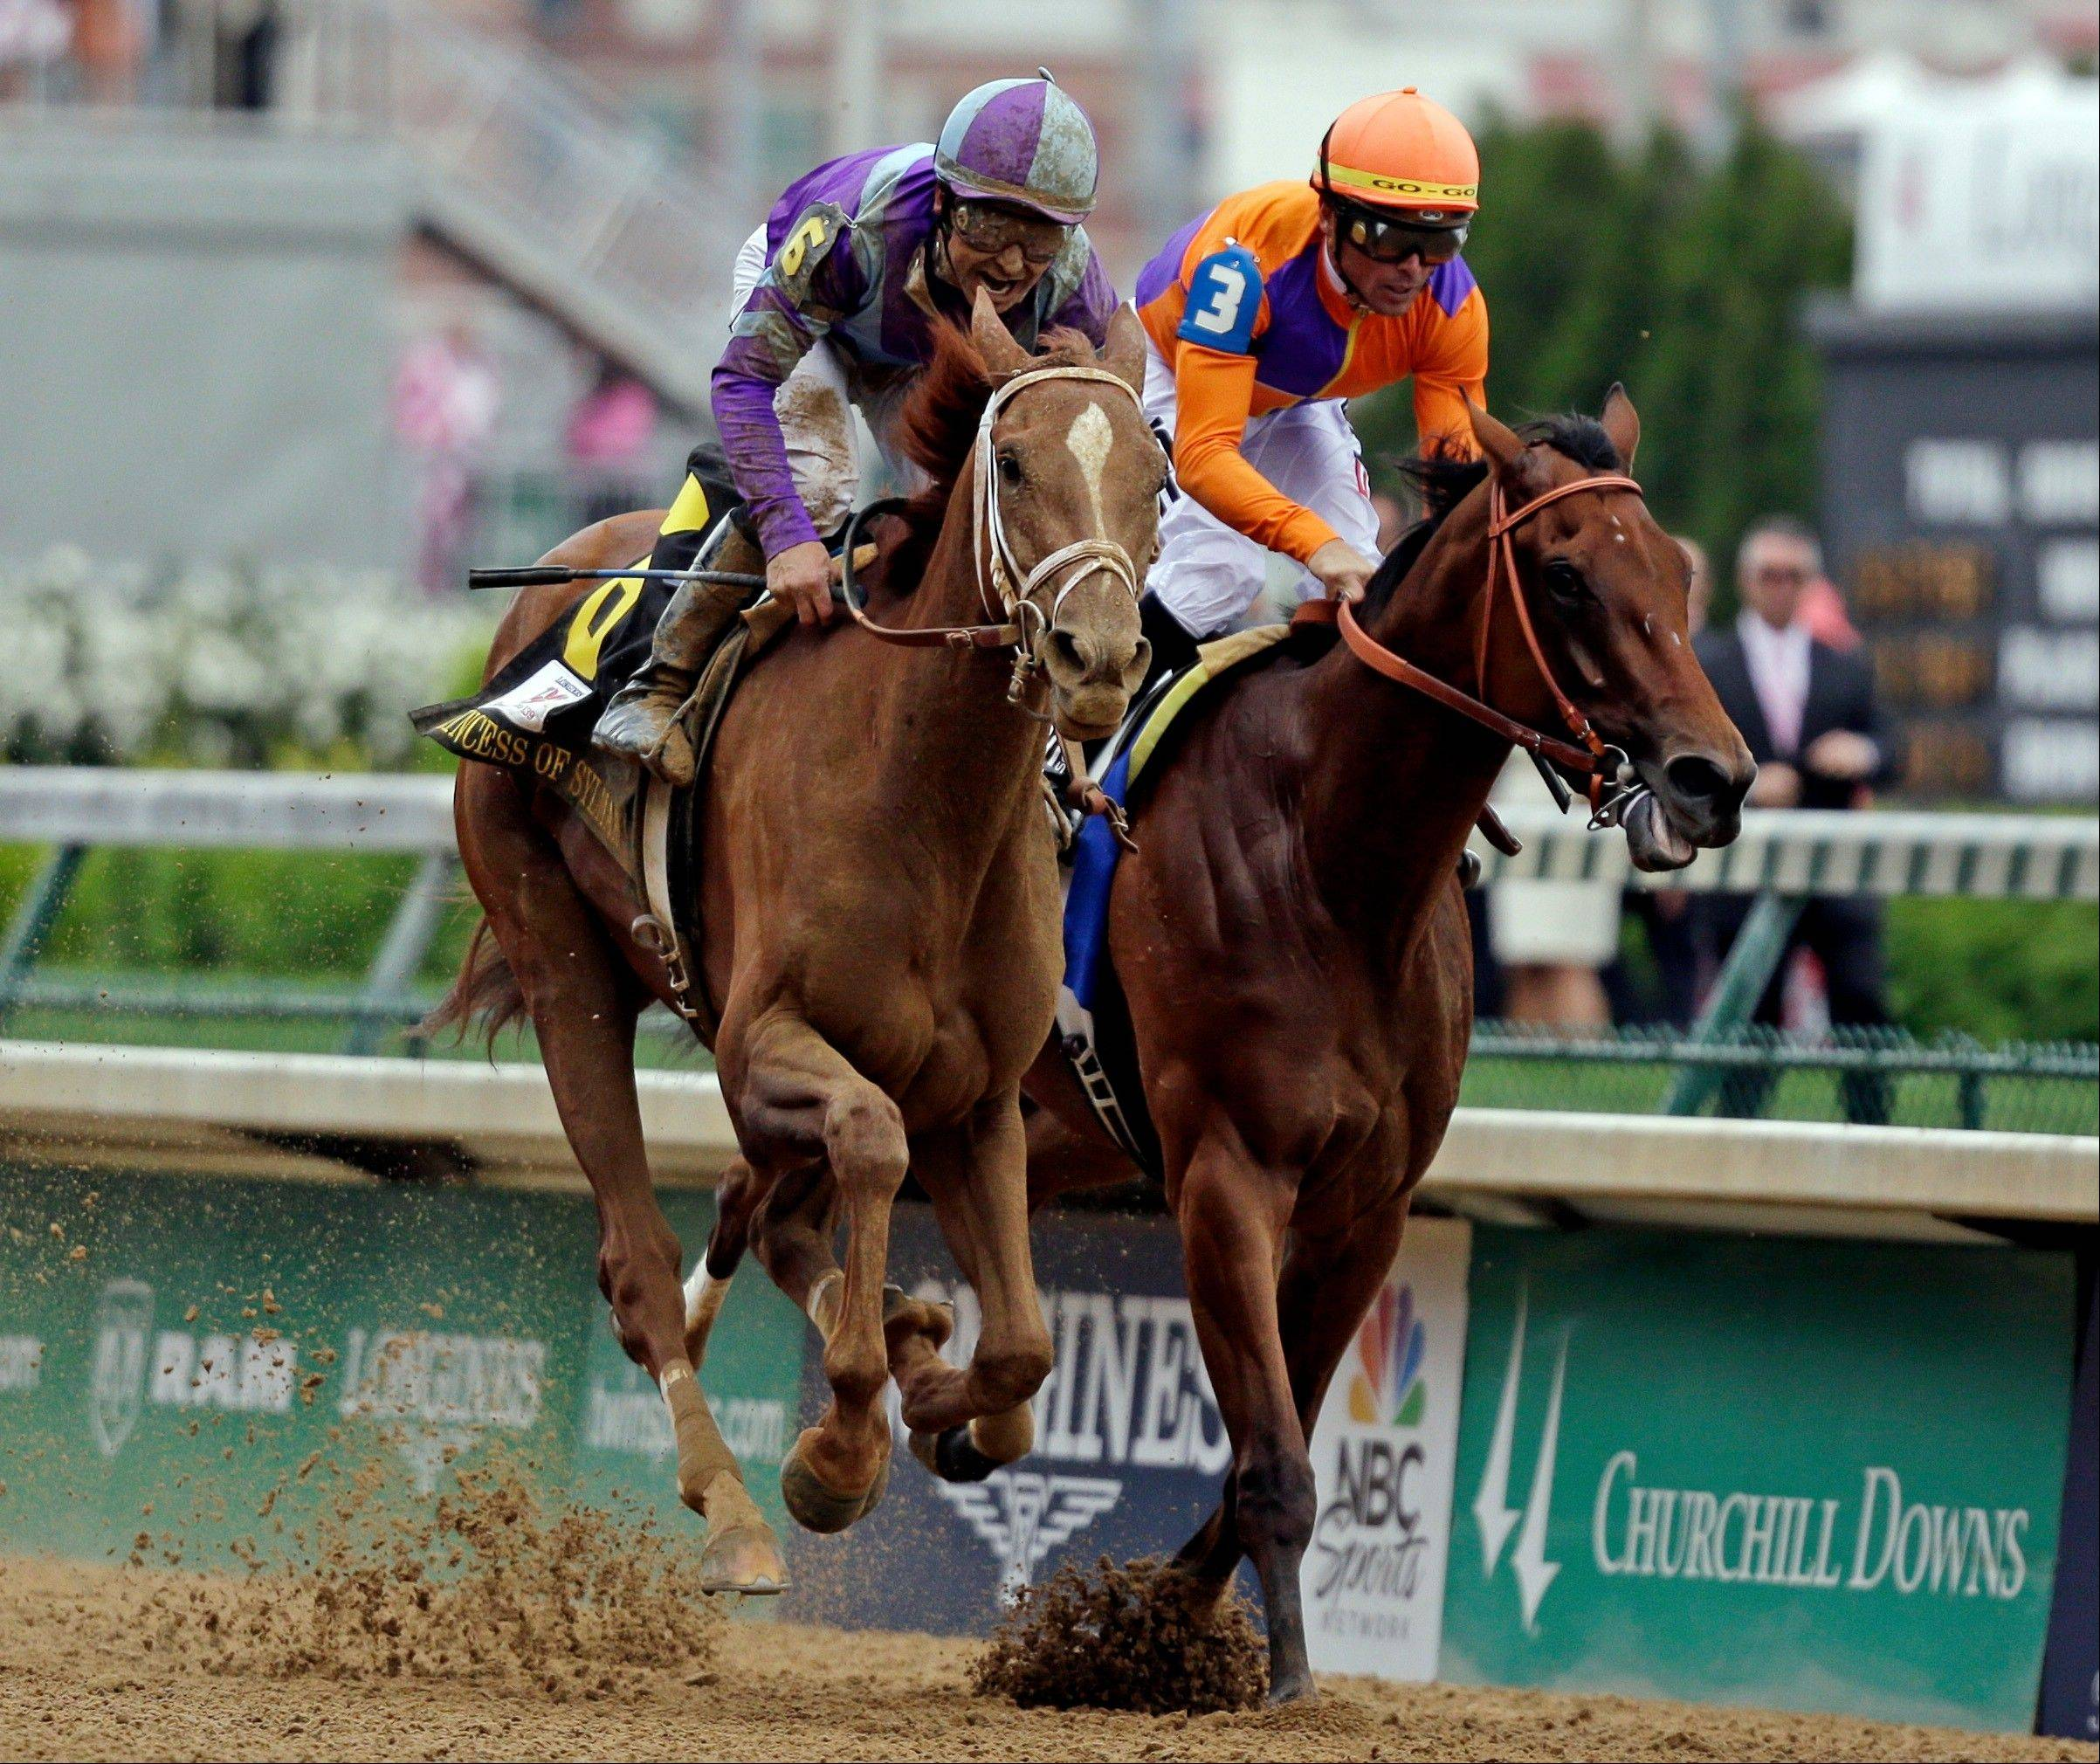 Mike Smith rides Princess of Sylmar to a win over Beholder ridden by Garrett Gomez in the 139th Kentucky Oaks at Churchill Downs Friday, May 3, 2013, in Louisville, Ky.(AP Photo/David Goldman)